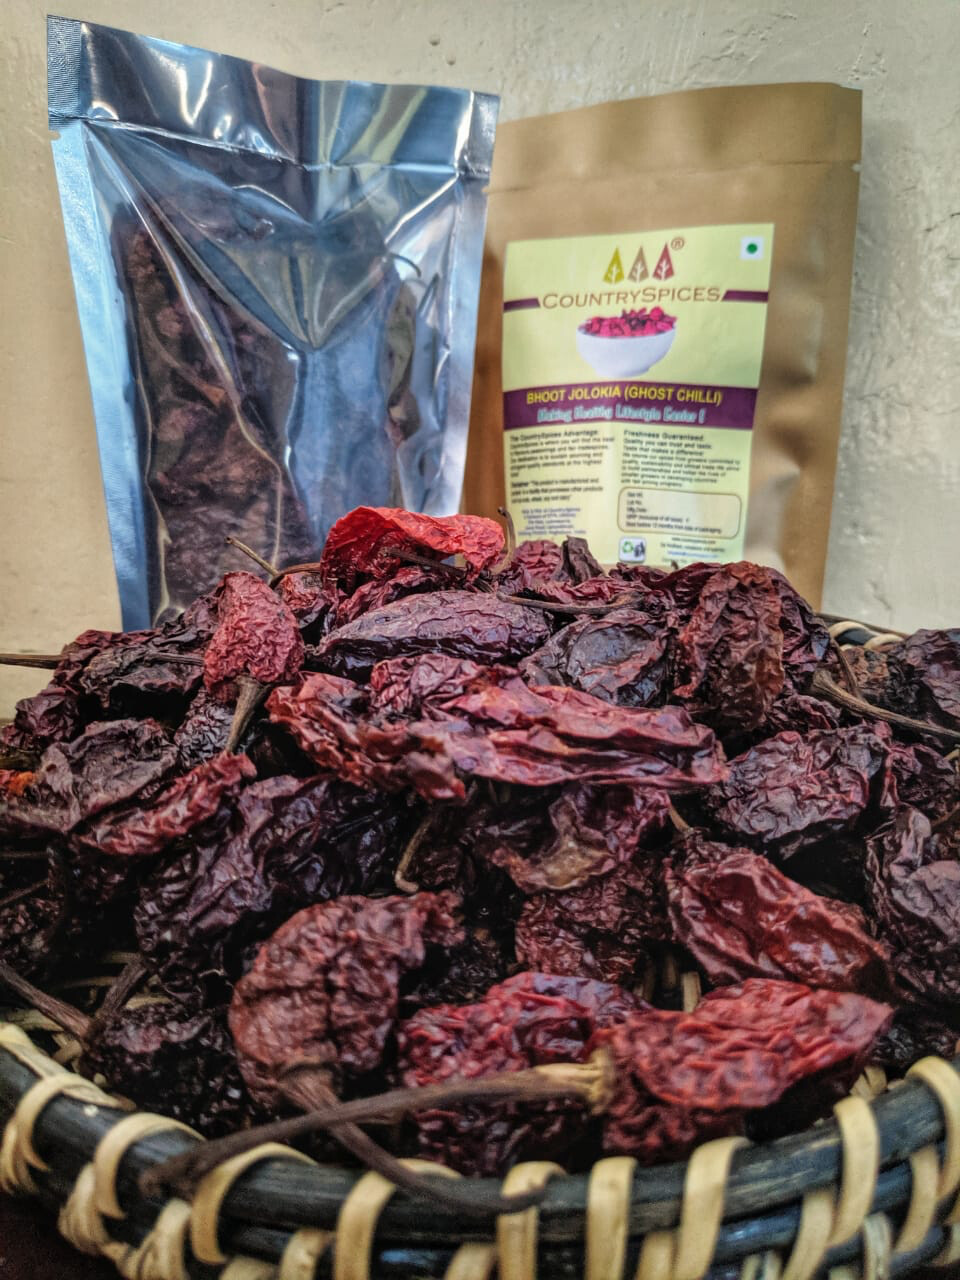 CountrySpices Bhoot Jolokia / Ghost Chilli Dried